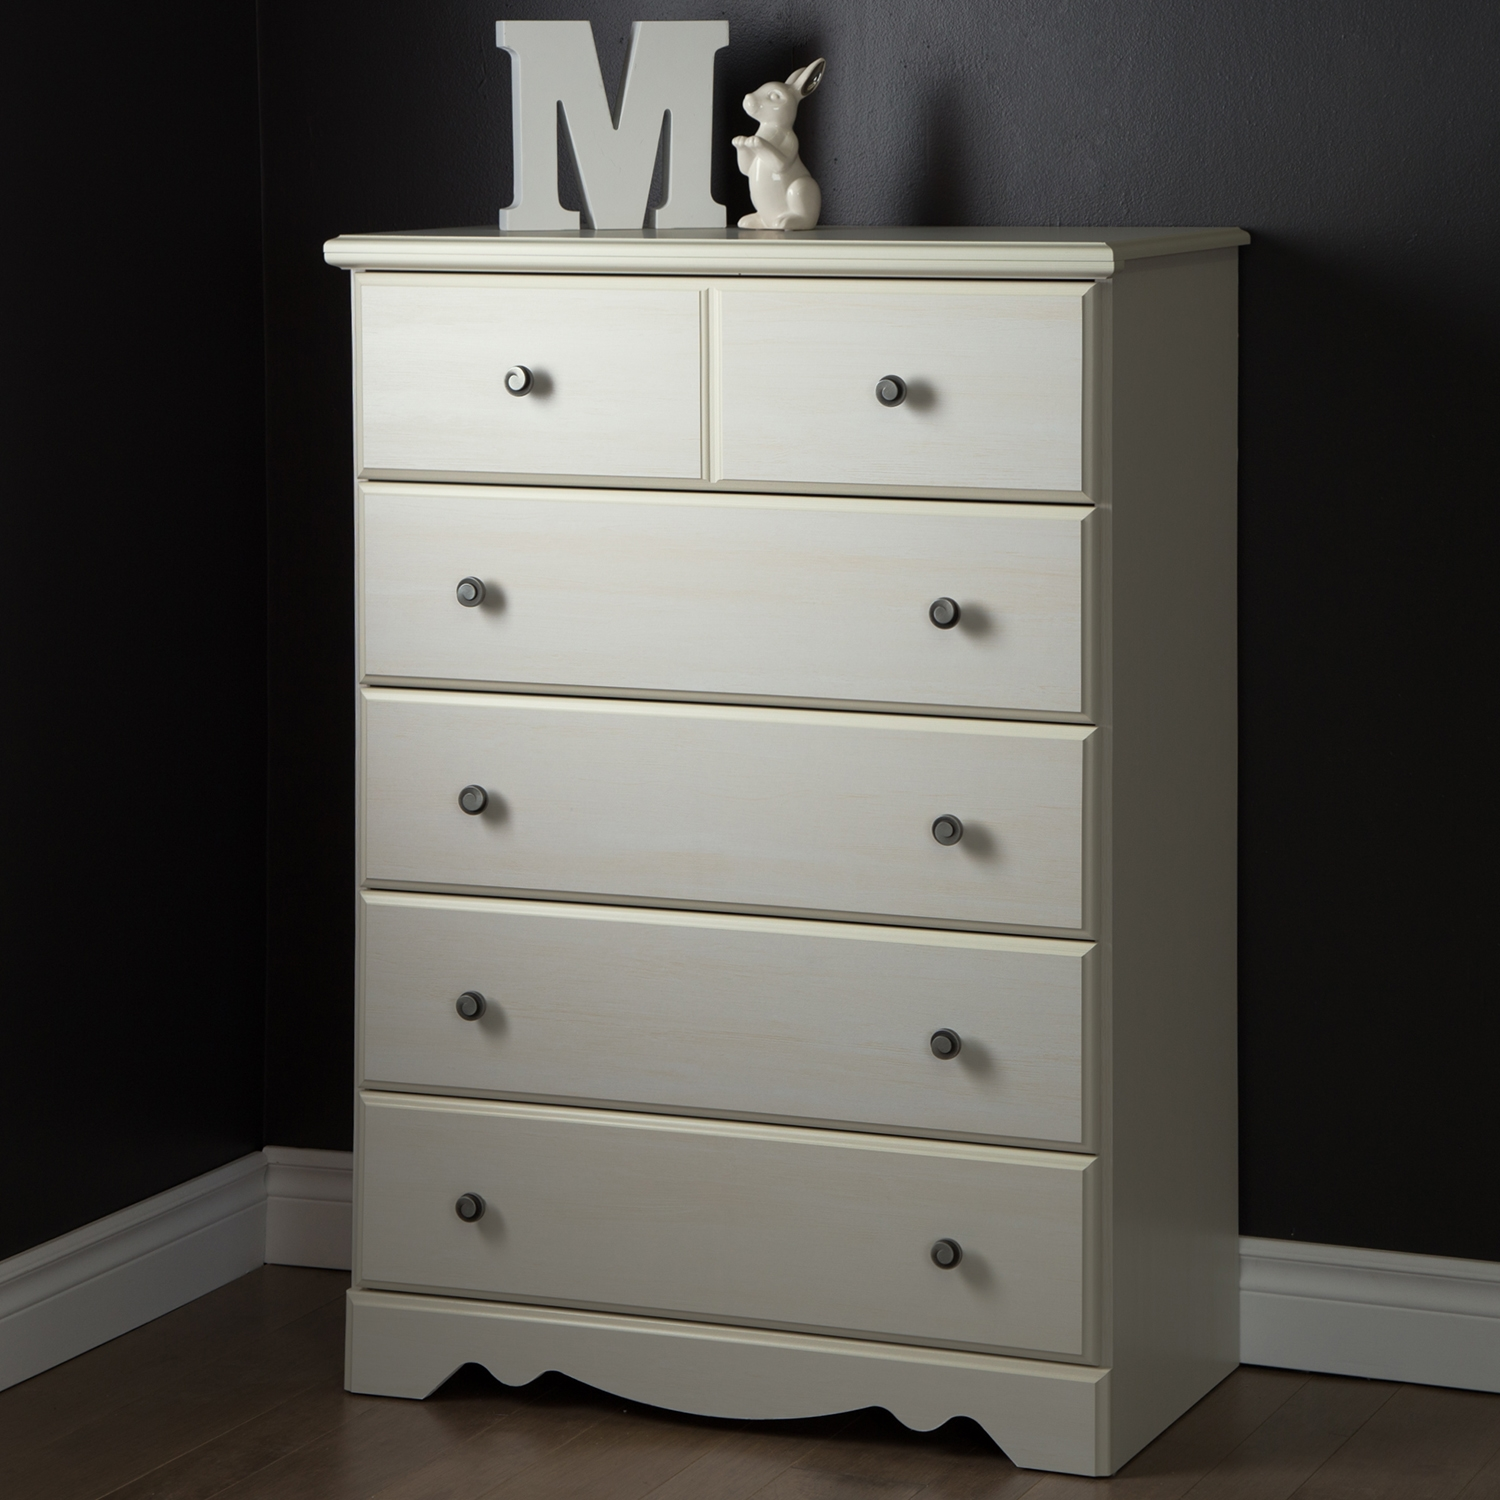 Country Poetry Chest - 5 Drawers, White Wash - SS-9031035